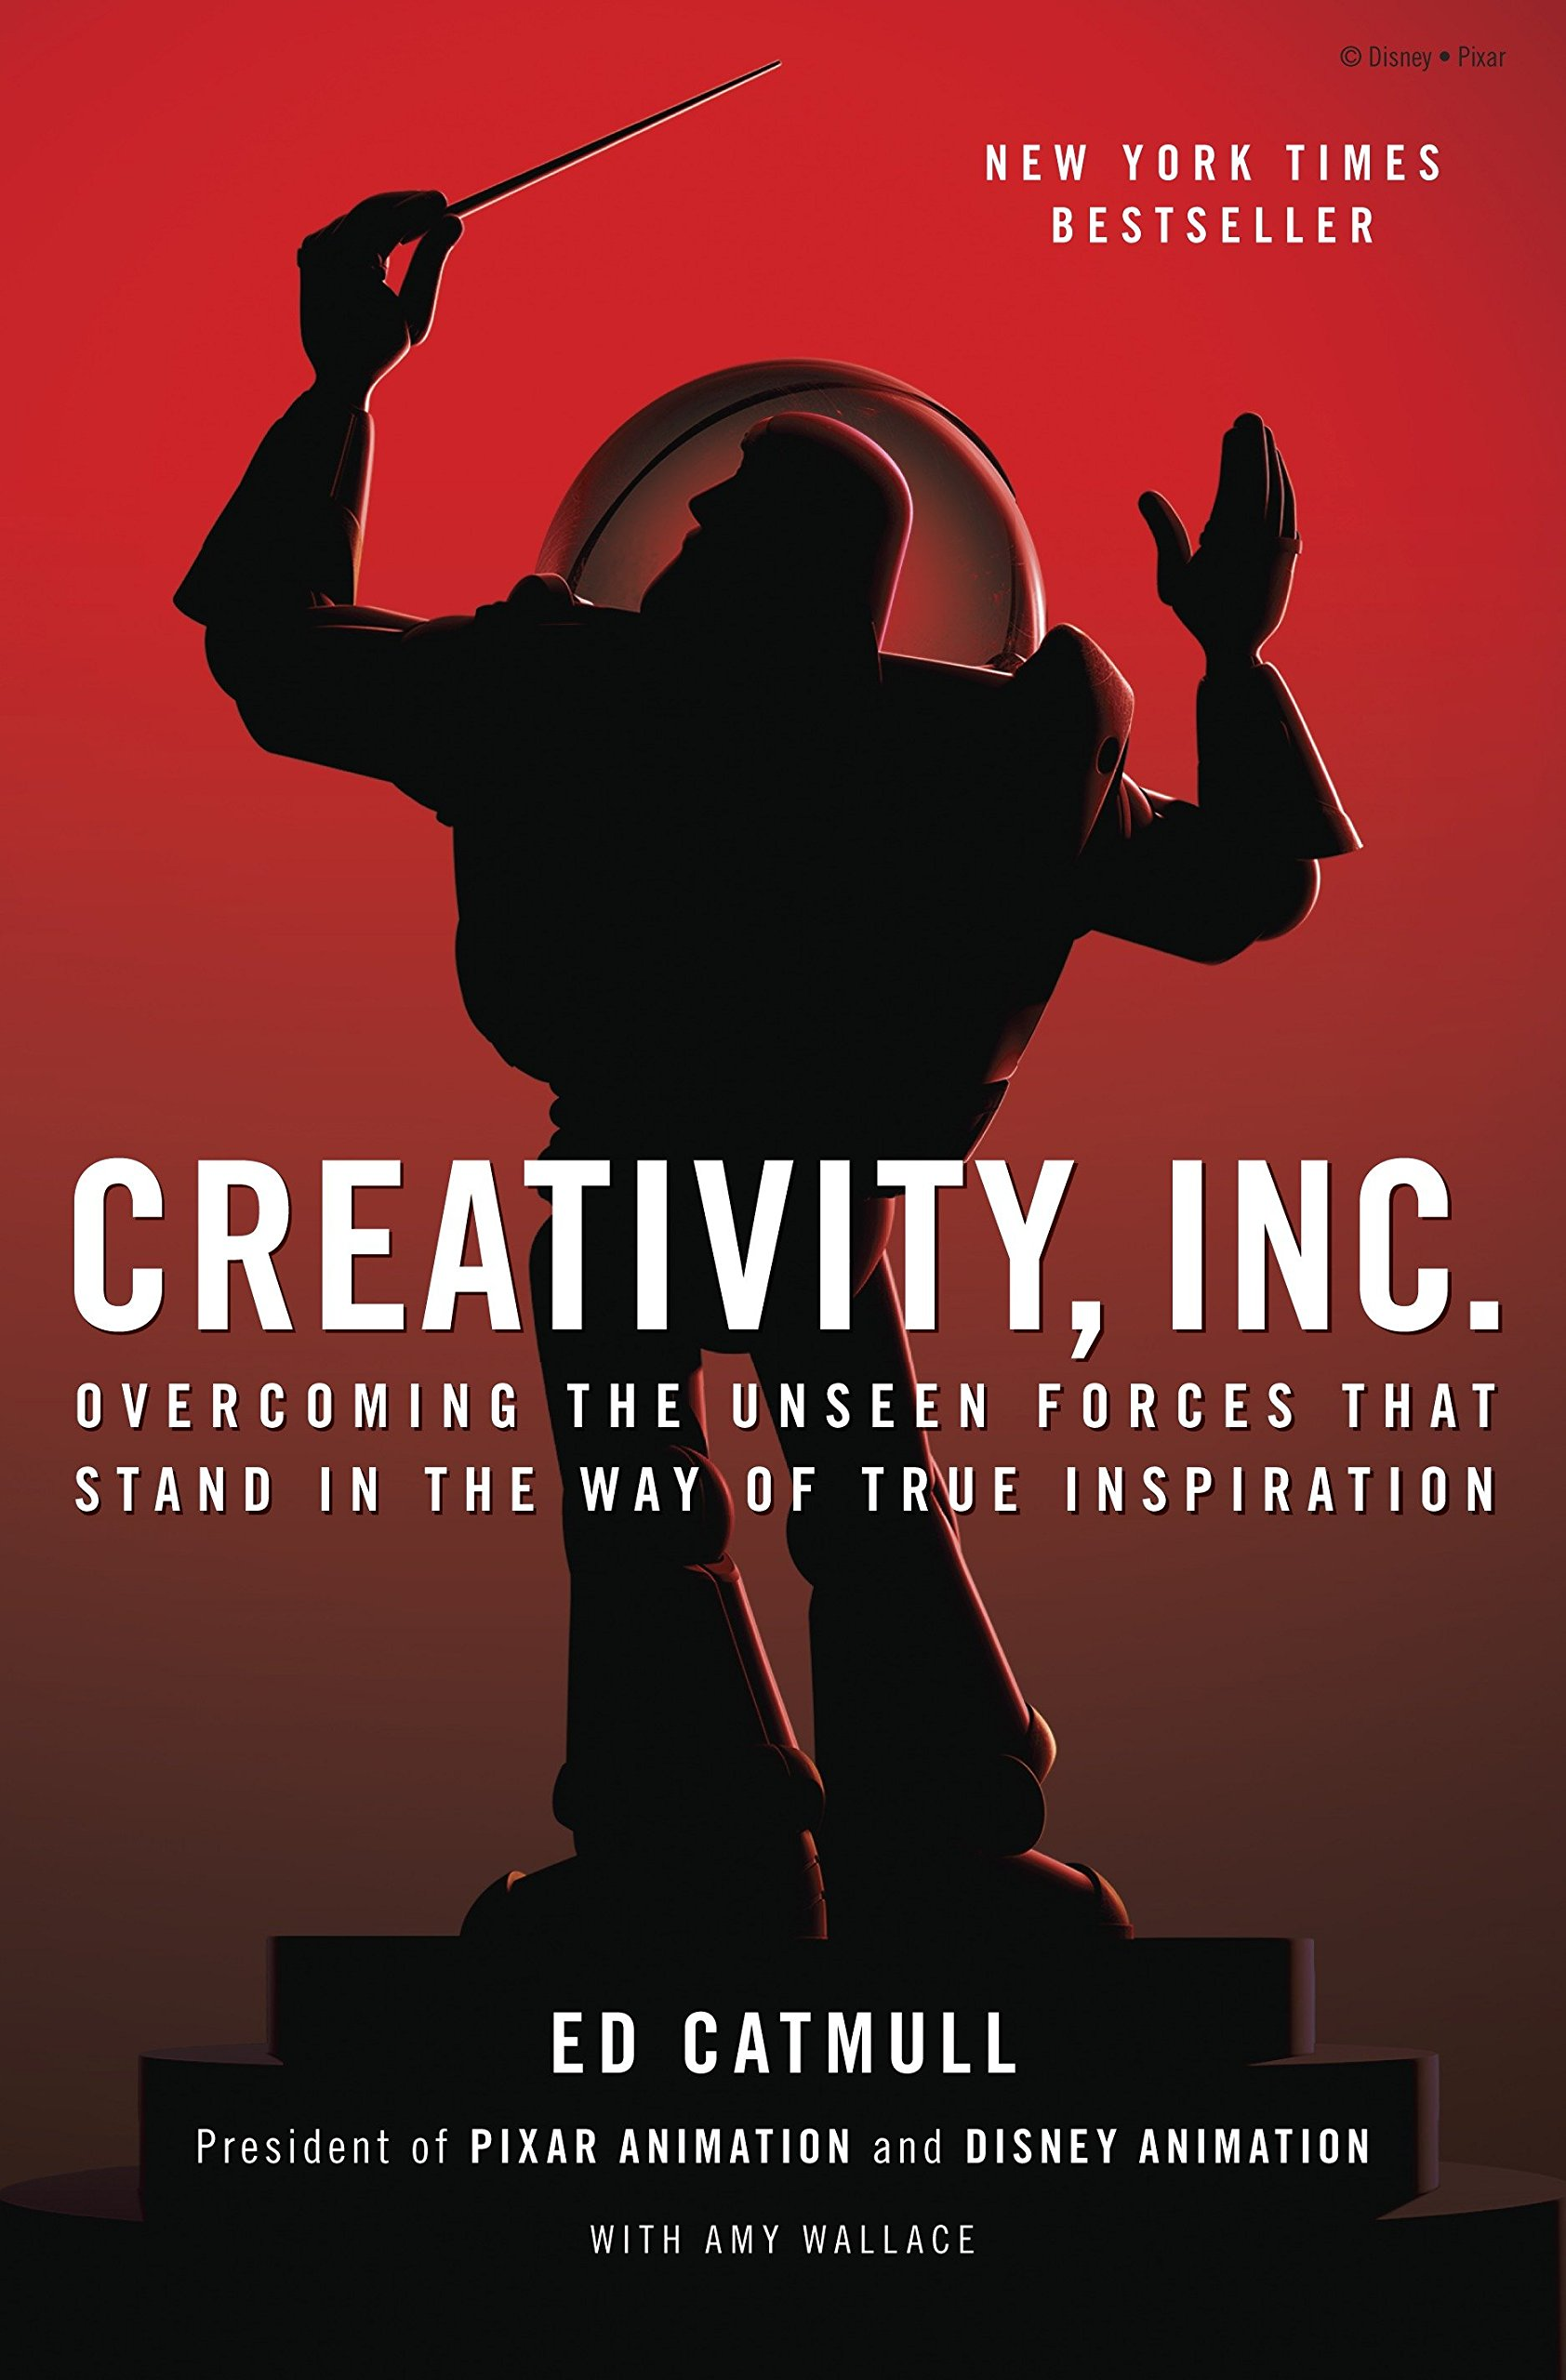 Αποτέλεσμα εικόνας για Creativity, Inc.: Overcoming the Unseen Forces That Stand in the Way of True Inspiration by Ed Catmull with Amy Wallace